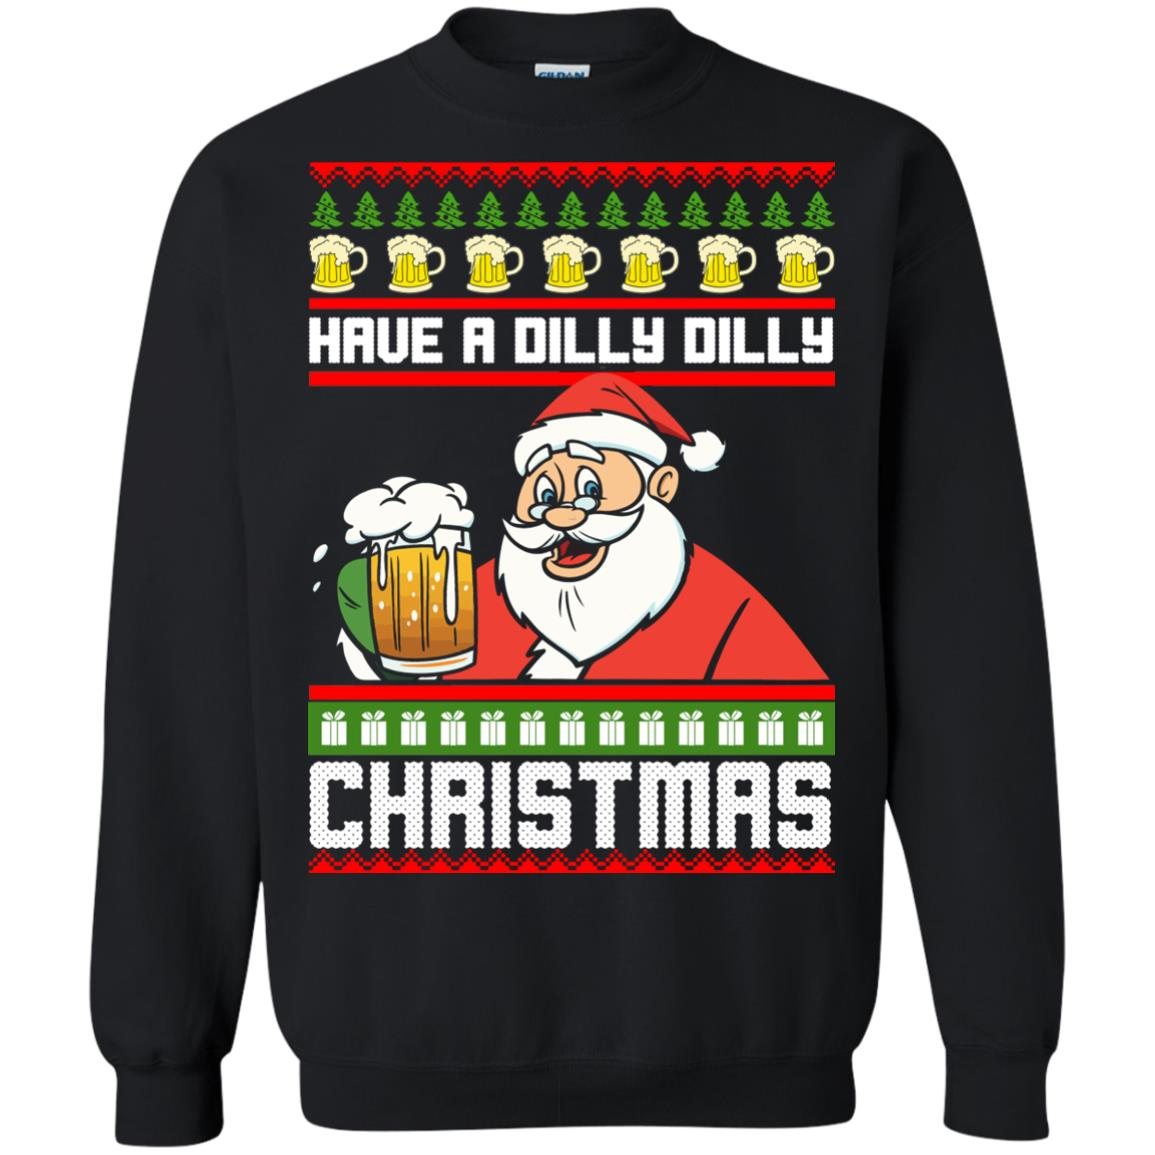 image 6132 - Have a Dilly Dilly Christmas Ugly Sweatshirt, Long Sleeve